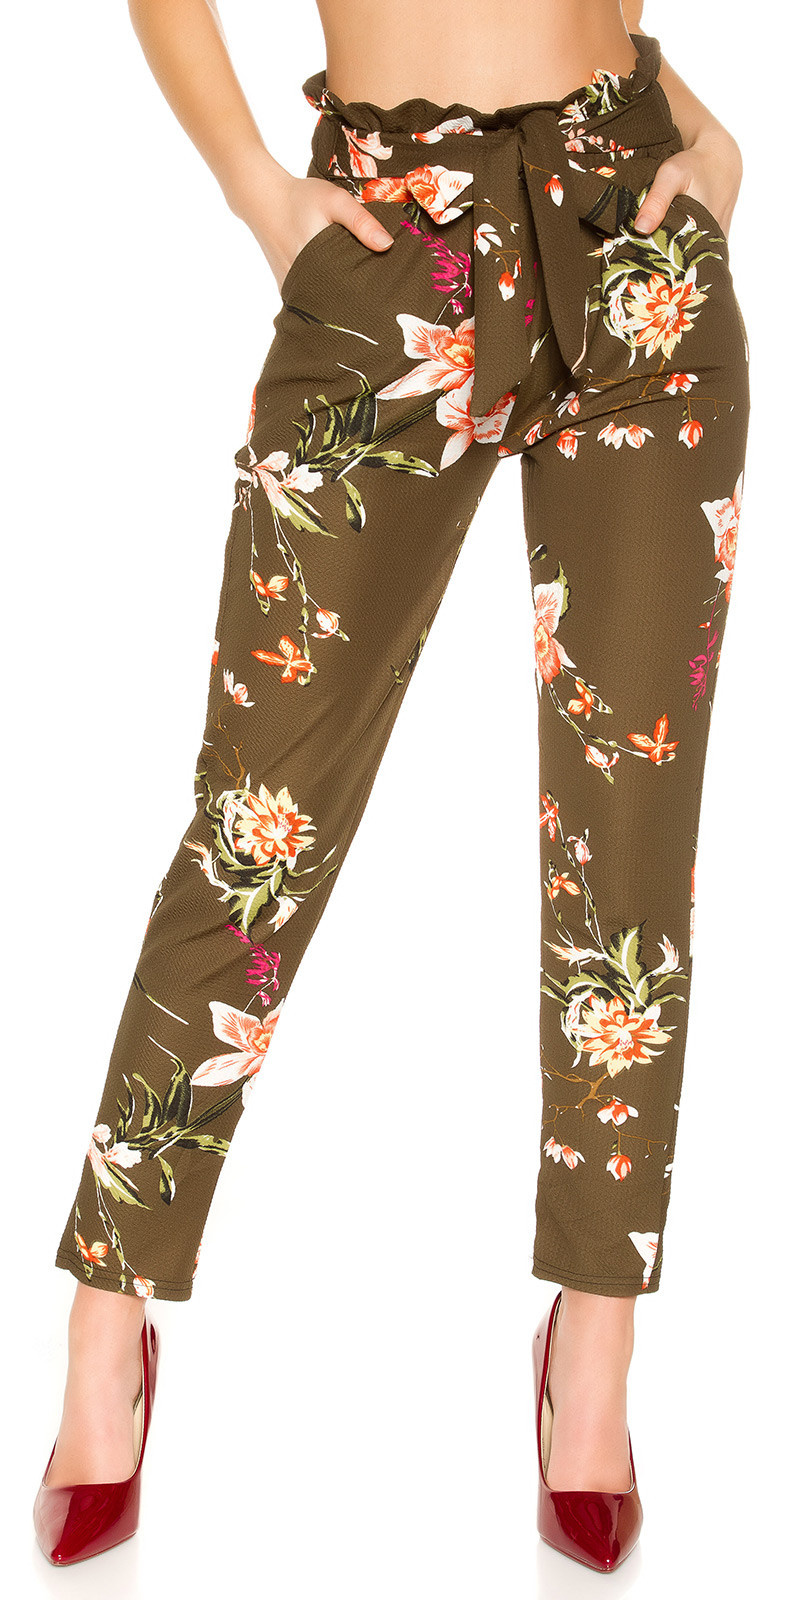 Trendy treggings in bloemen-print met lus khaki